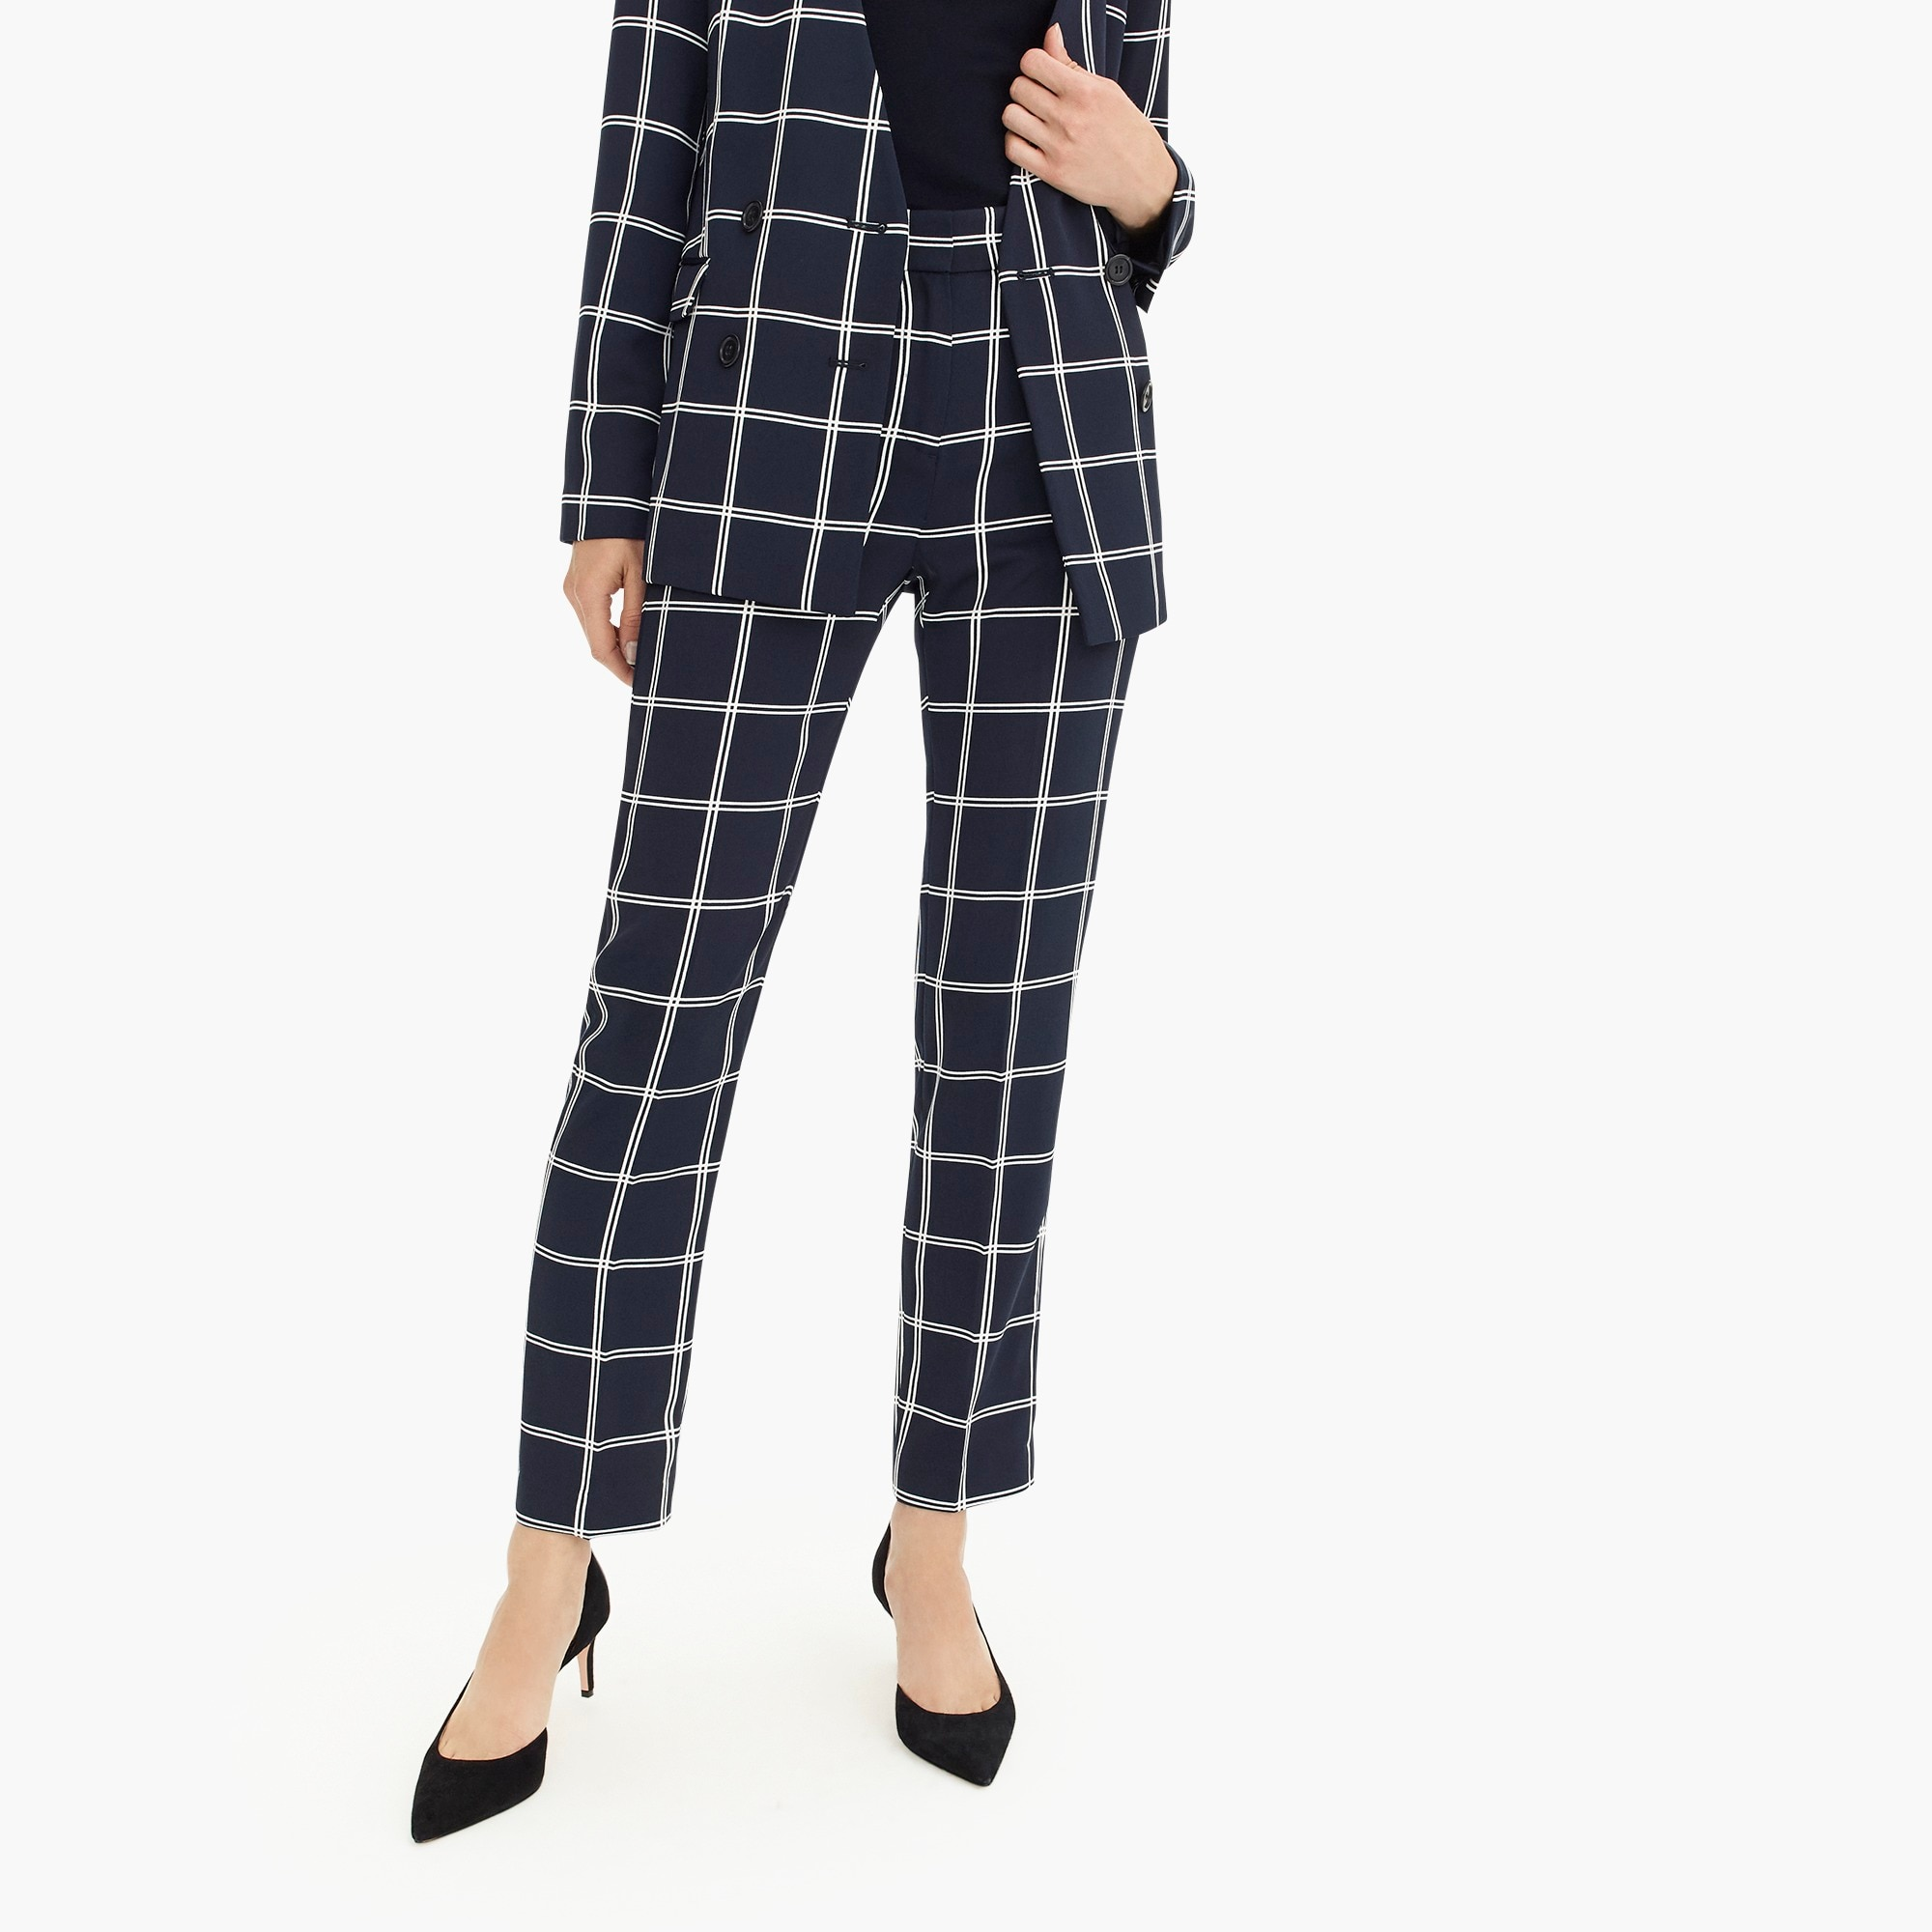 womens French girl slim crop pant in windowpane 365 crepe